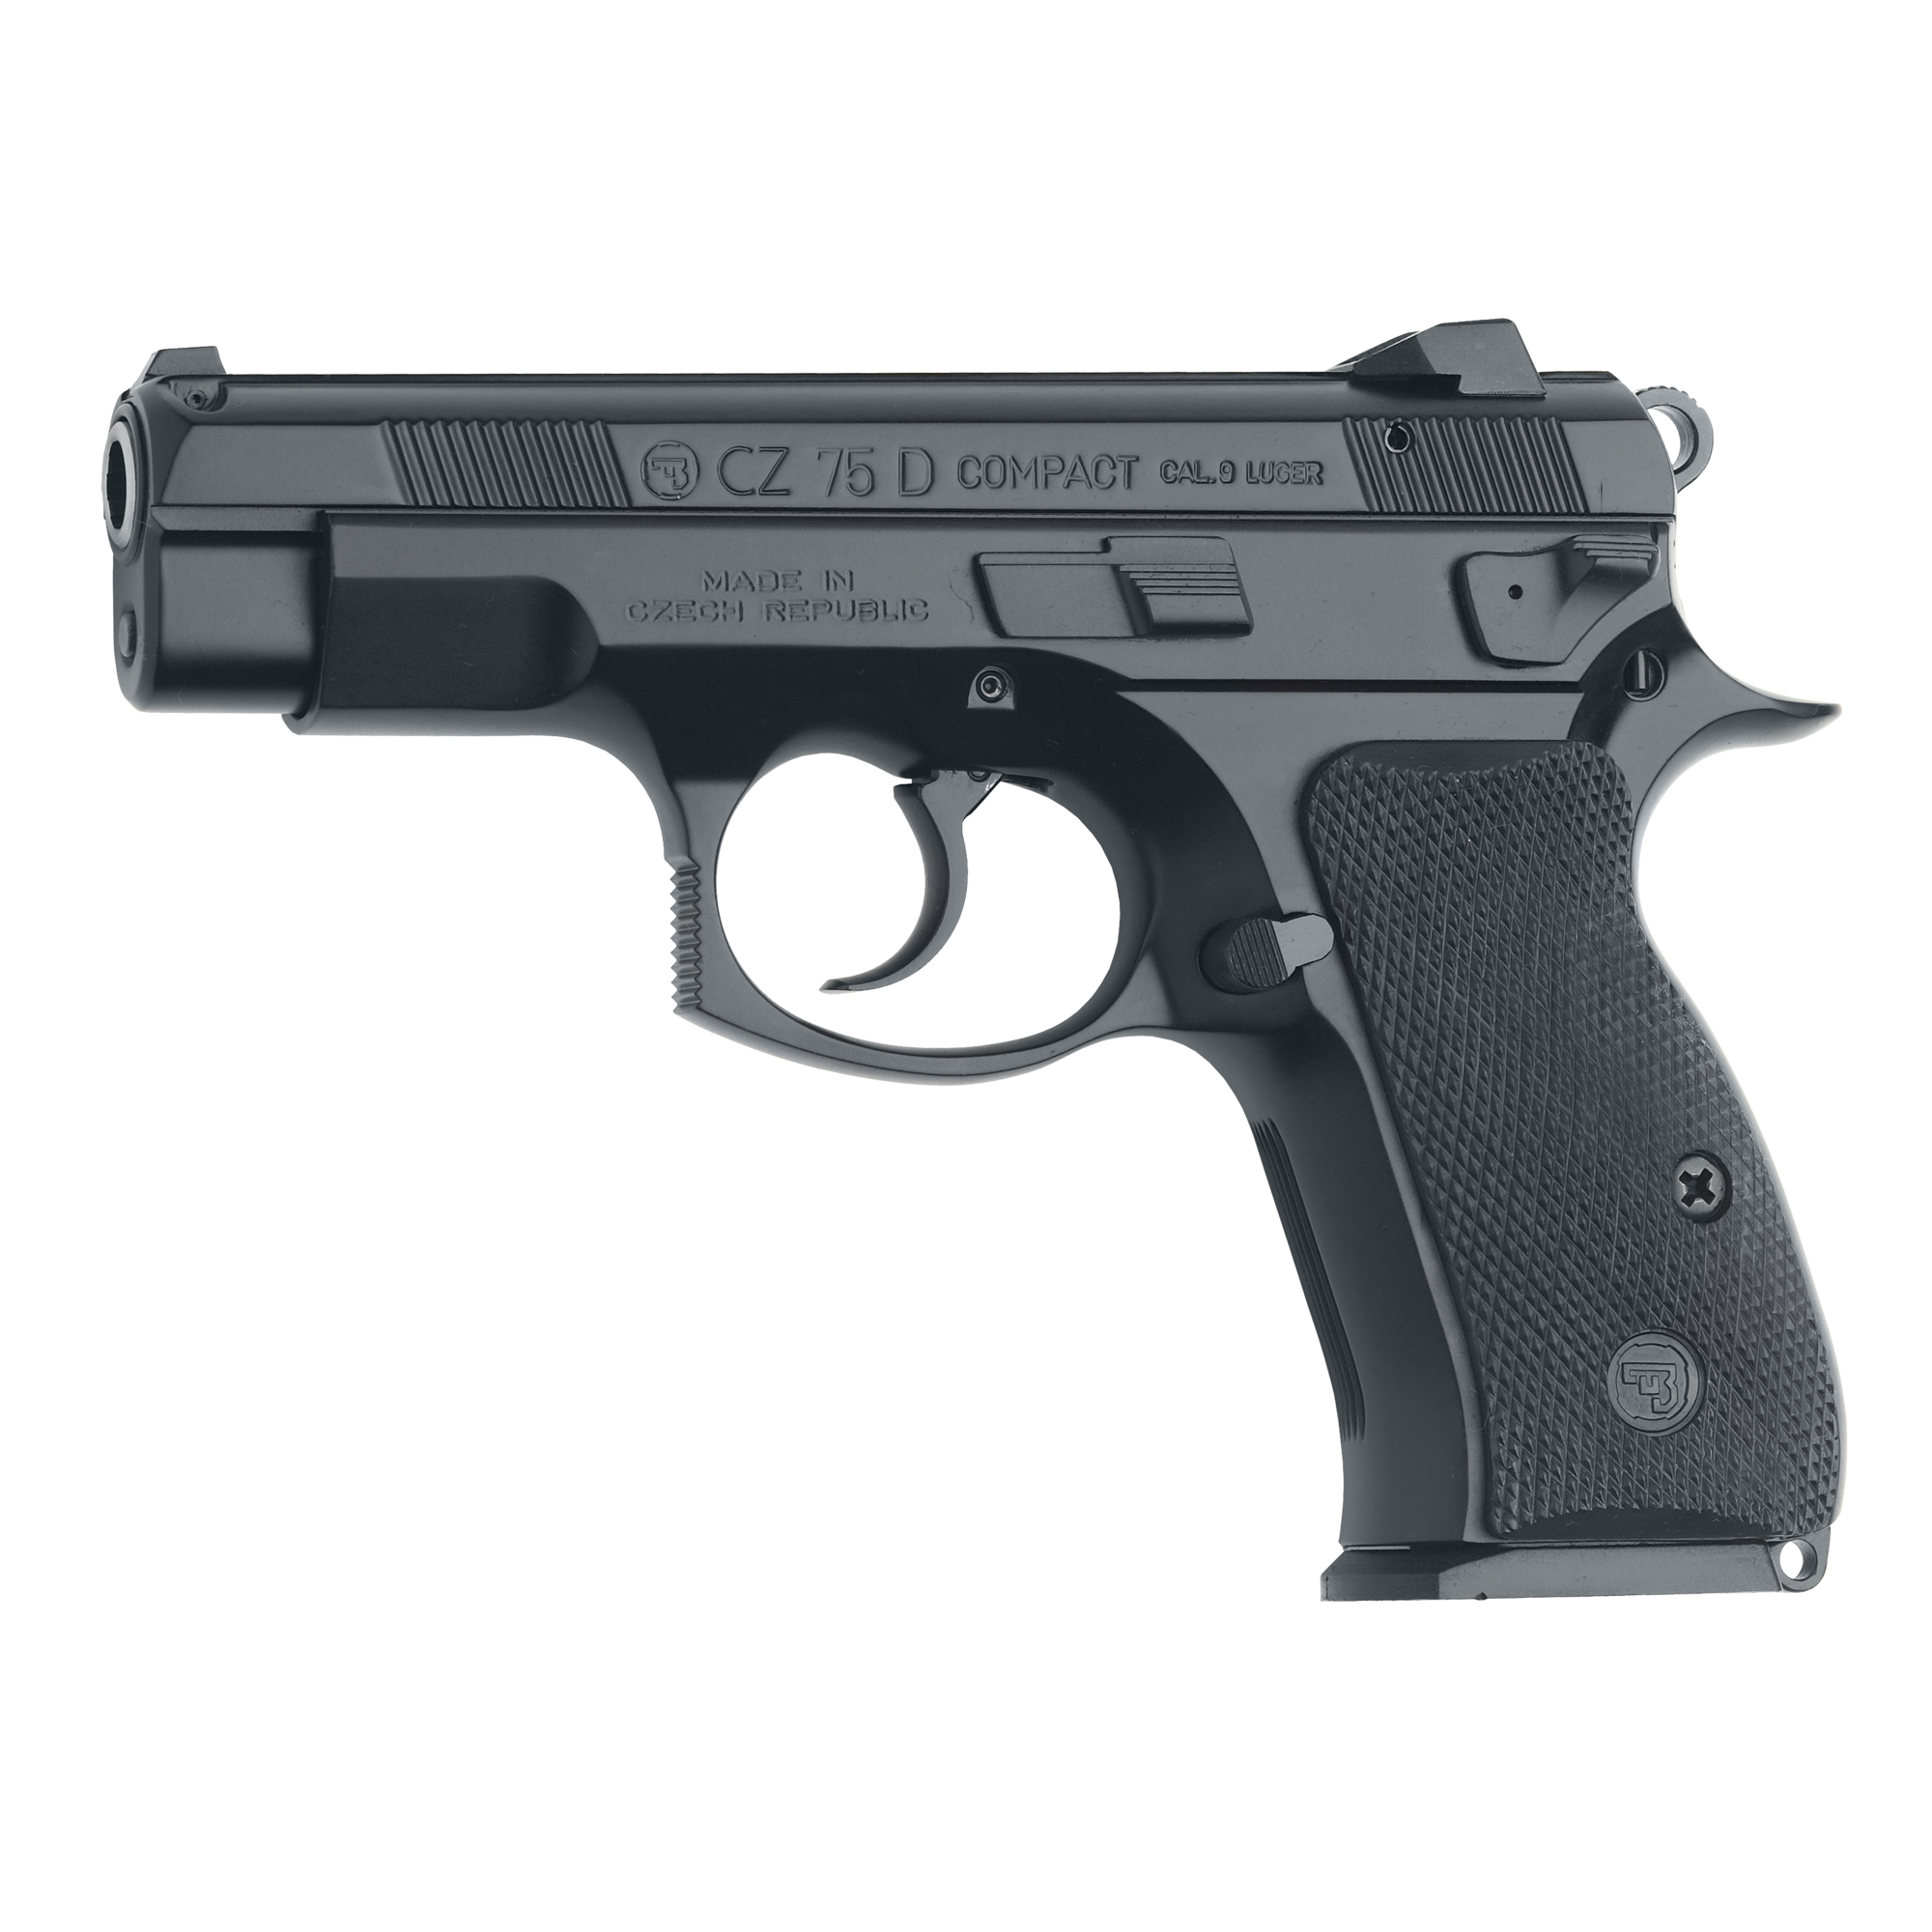 CZ-75 D PCR Compact, Fixed Sights, 9mm